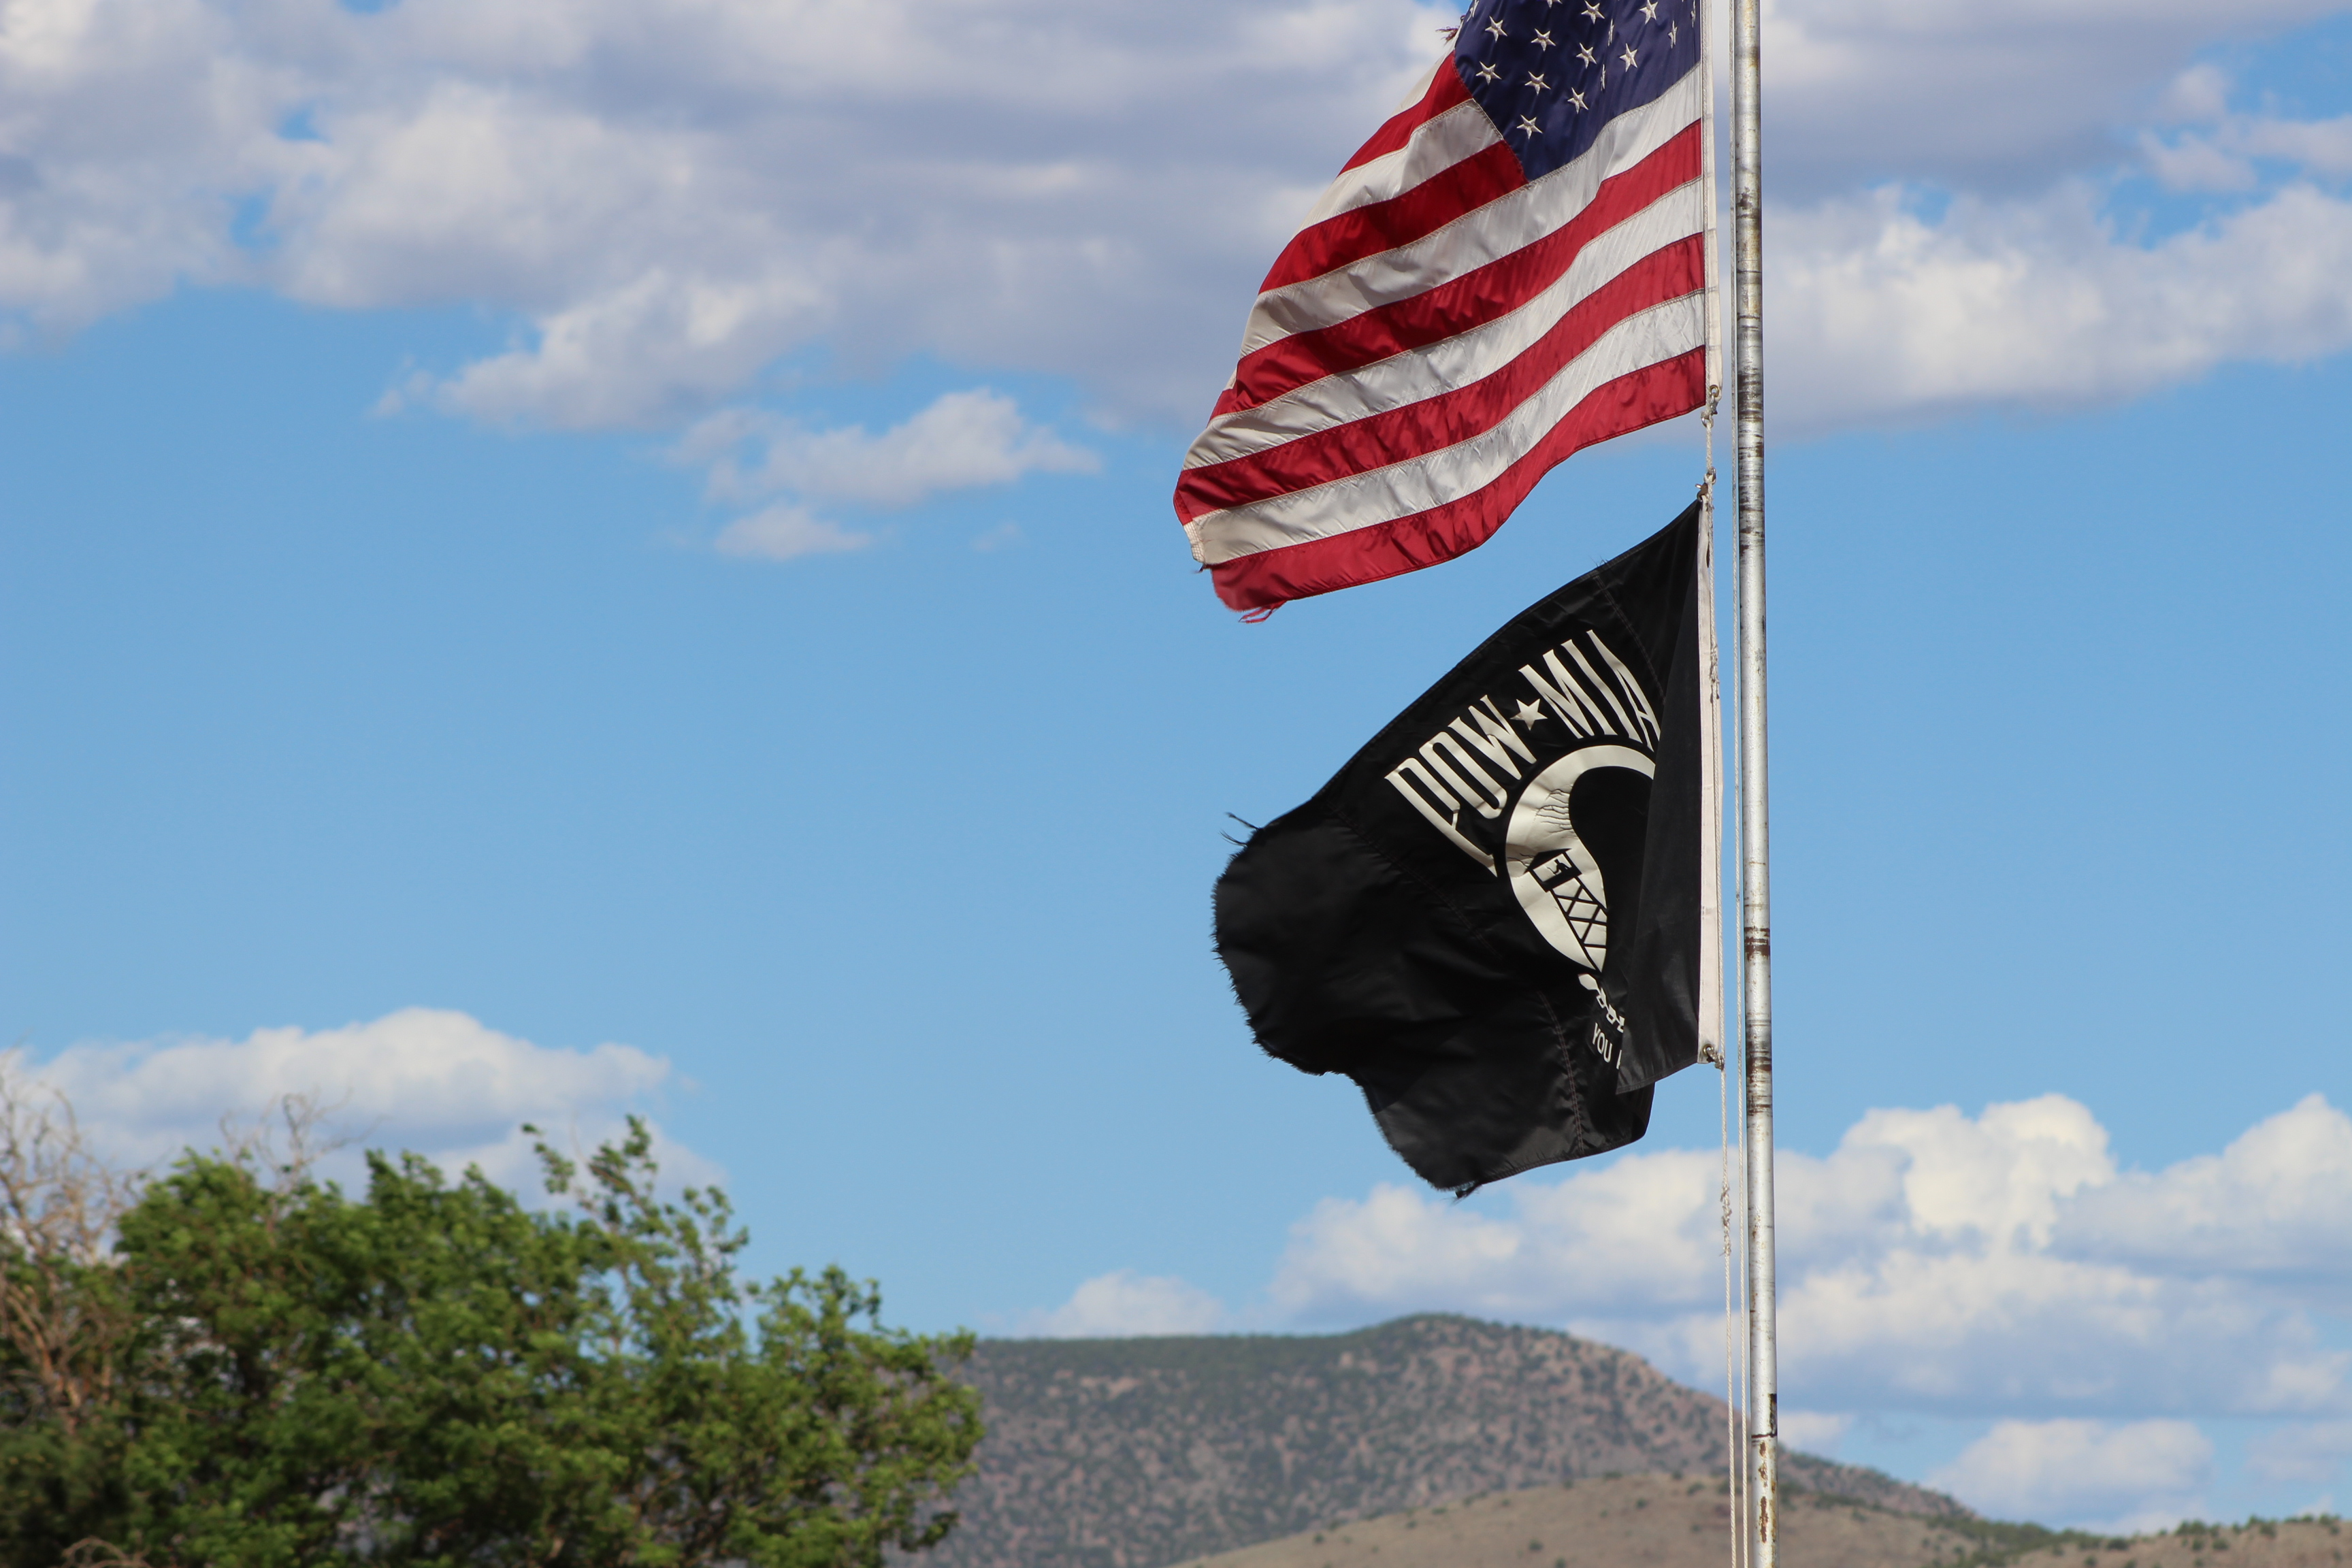 Old Glory, shown here above a POW-MIA flag, still waves proudly in a tiny spot in America where Deputy Jobe Peterson patrols. The people there hold tight to their God, guns and traditional ways of life. Iron County, Utah, July 15, 2016 | Photo by Tracie Sullivan, St. George News / Cedar City News